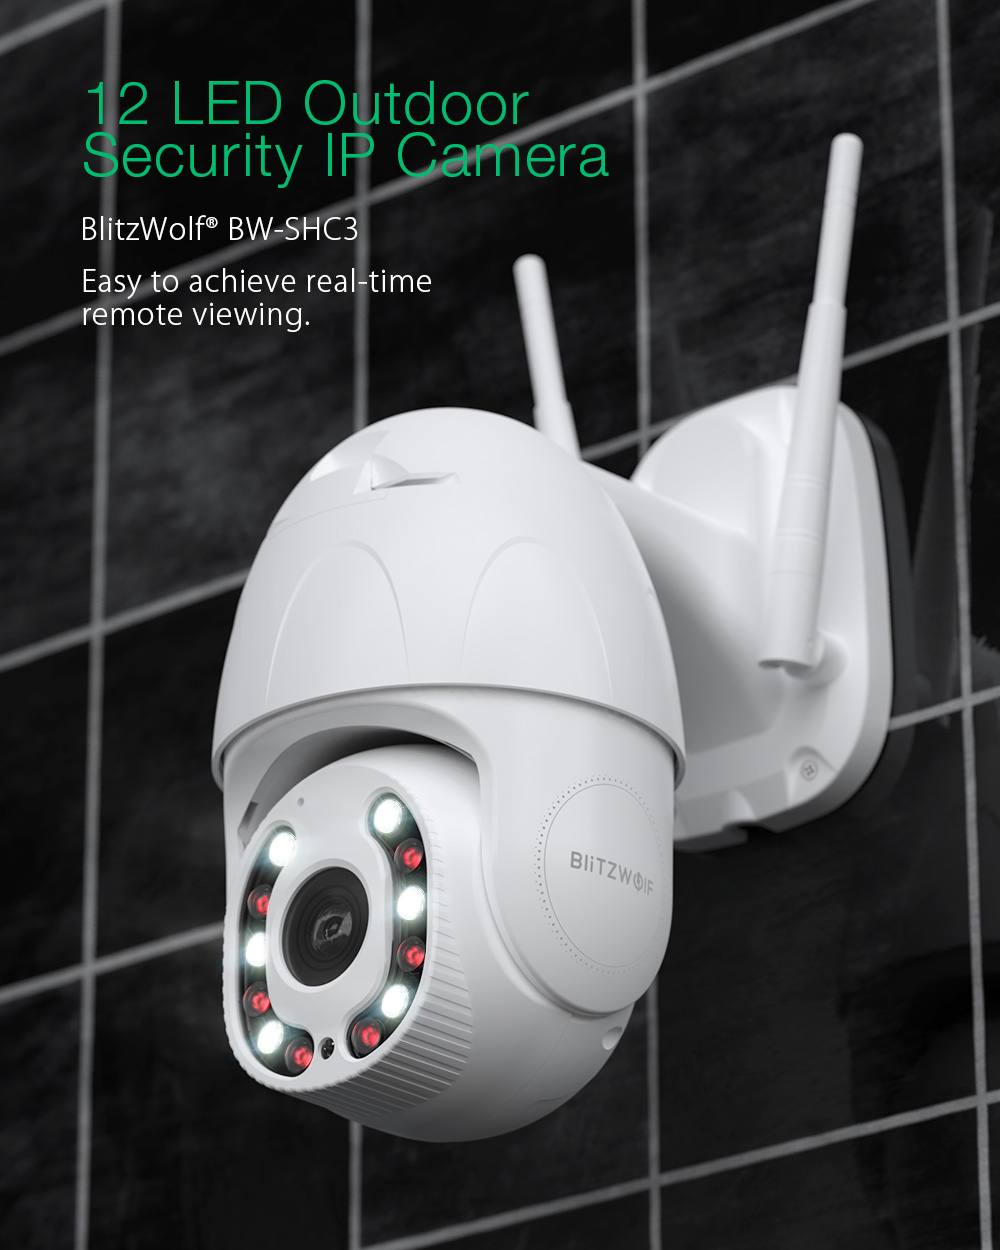 Blitzwolf BW-SHC3 Security IP camera